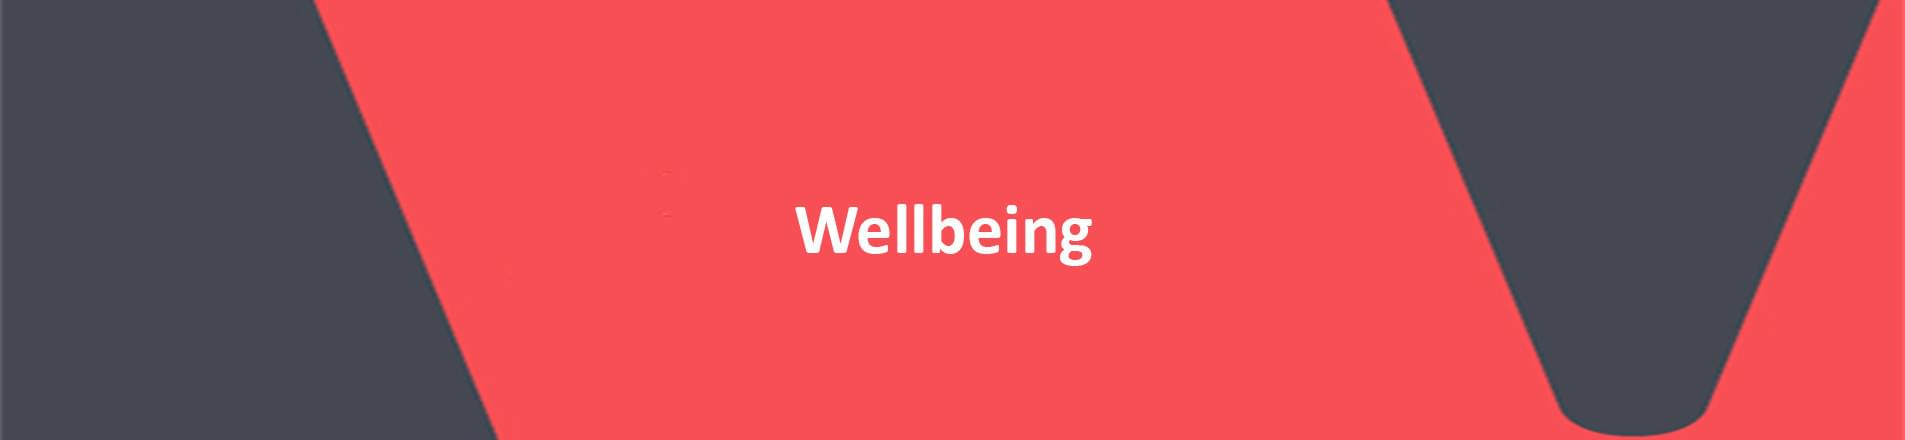 Image of the word wellbeing in white font on a red background